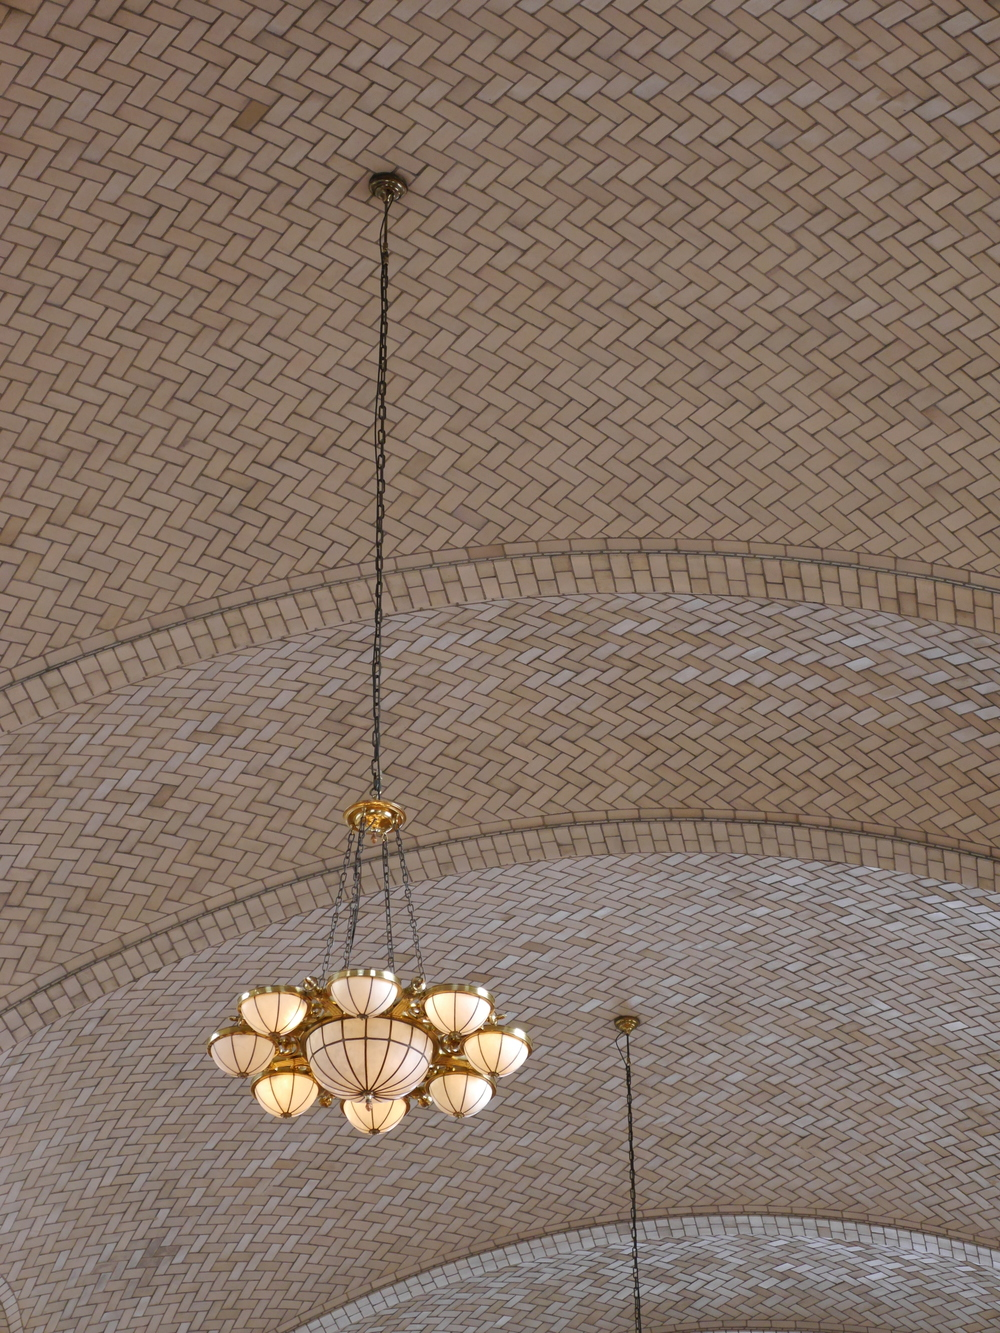 The roof and chandeliers in the registry room were really cool.